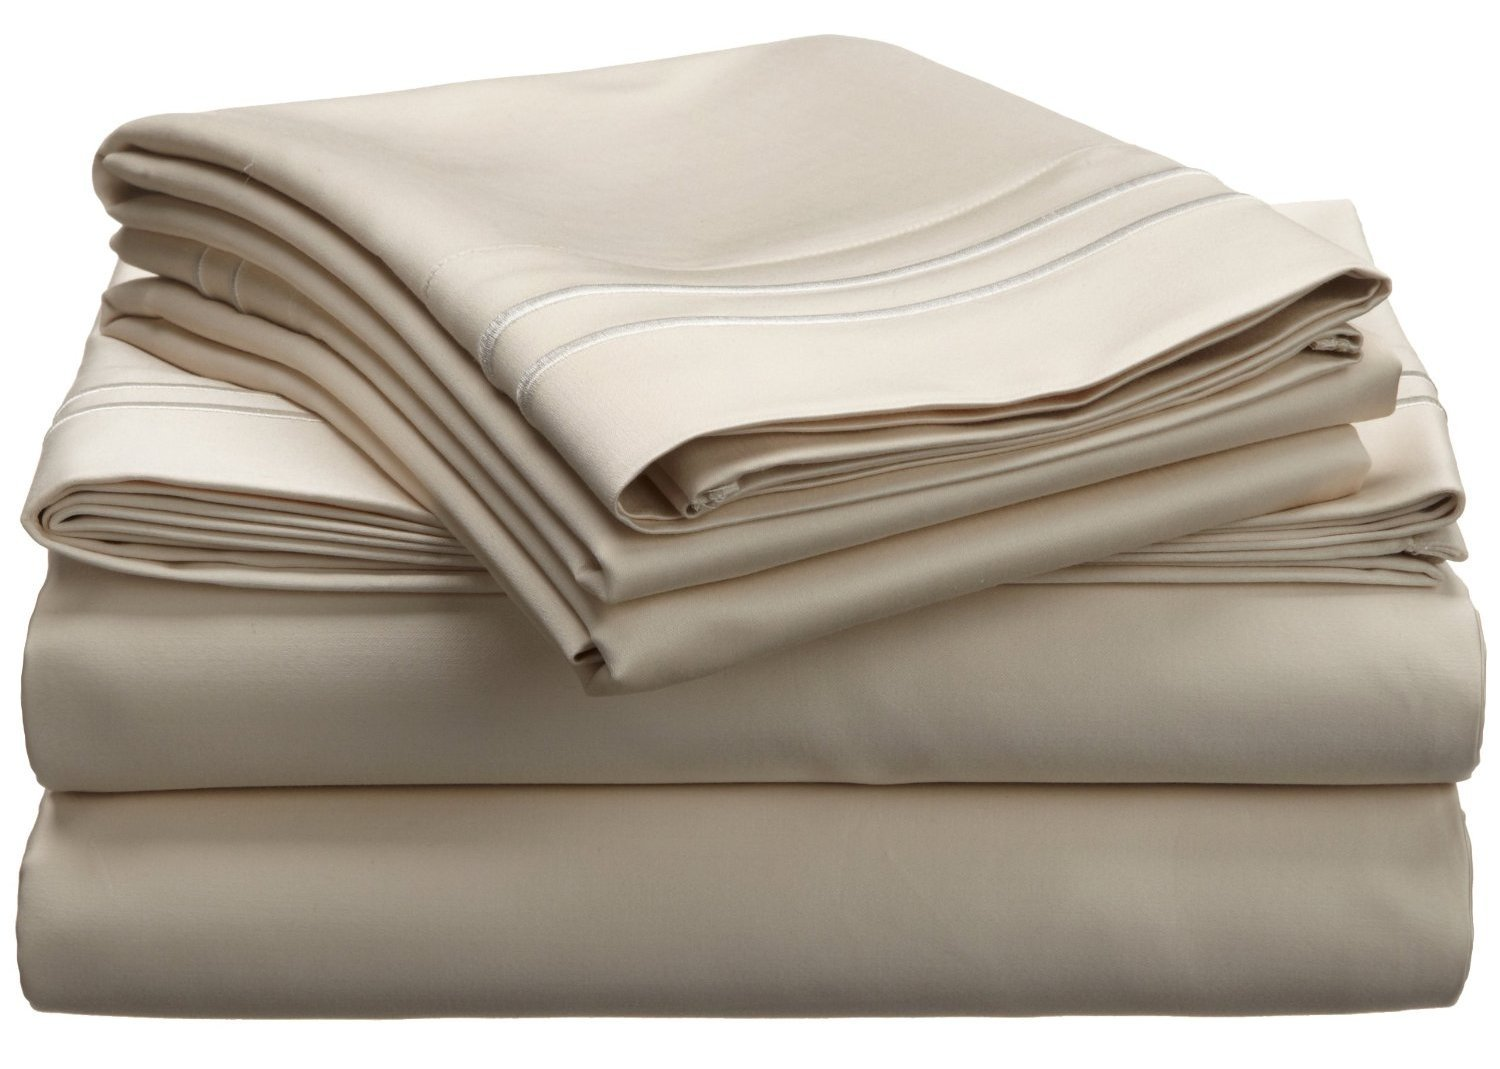 100 egyptian cotton sheets amazon buy 10 inch deep pocket for Highest thread count egyptian cotton sheets